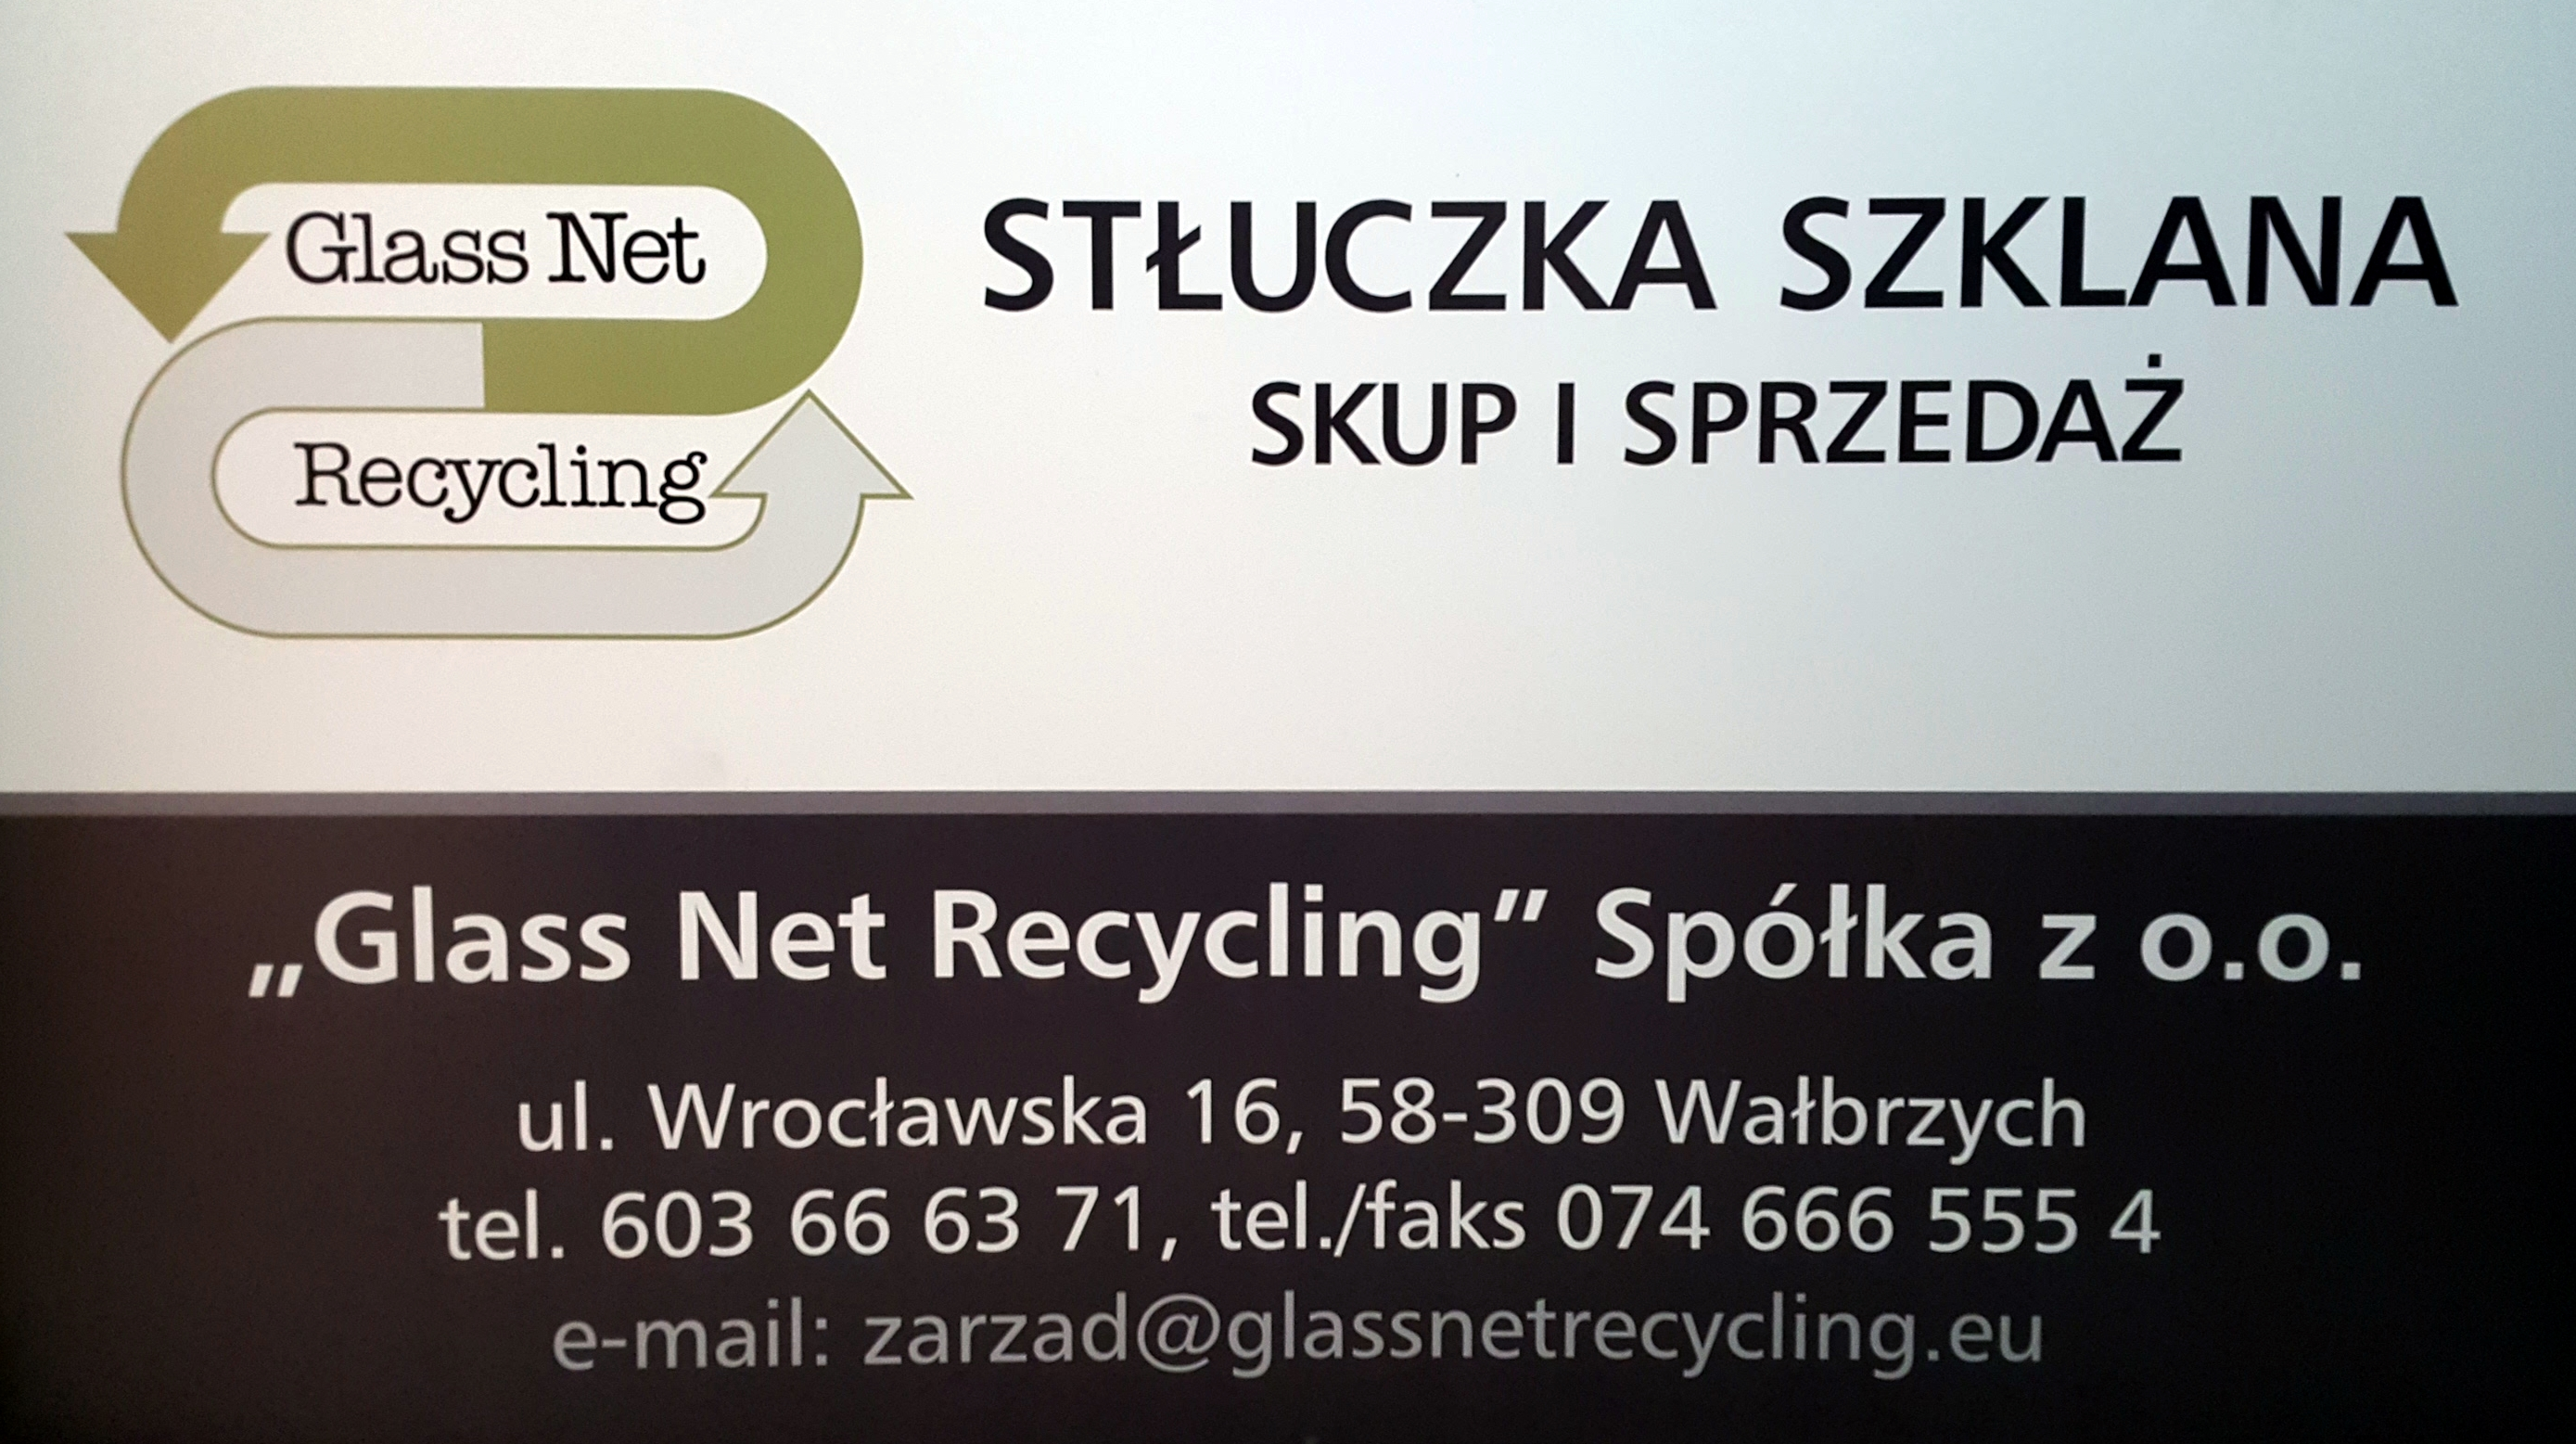 Glass Net Recycling